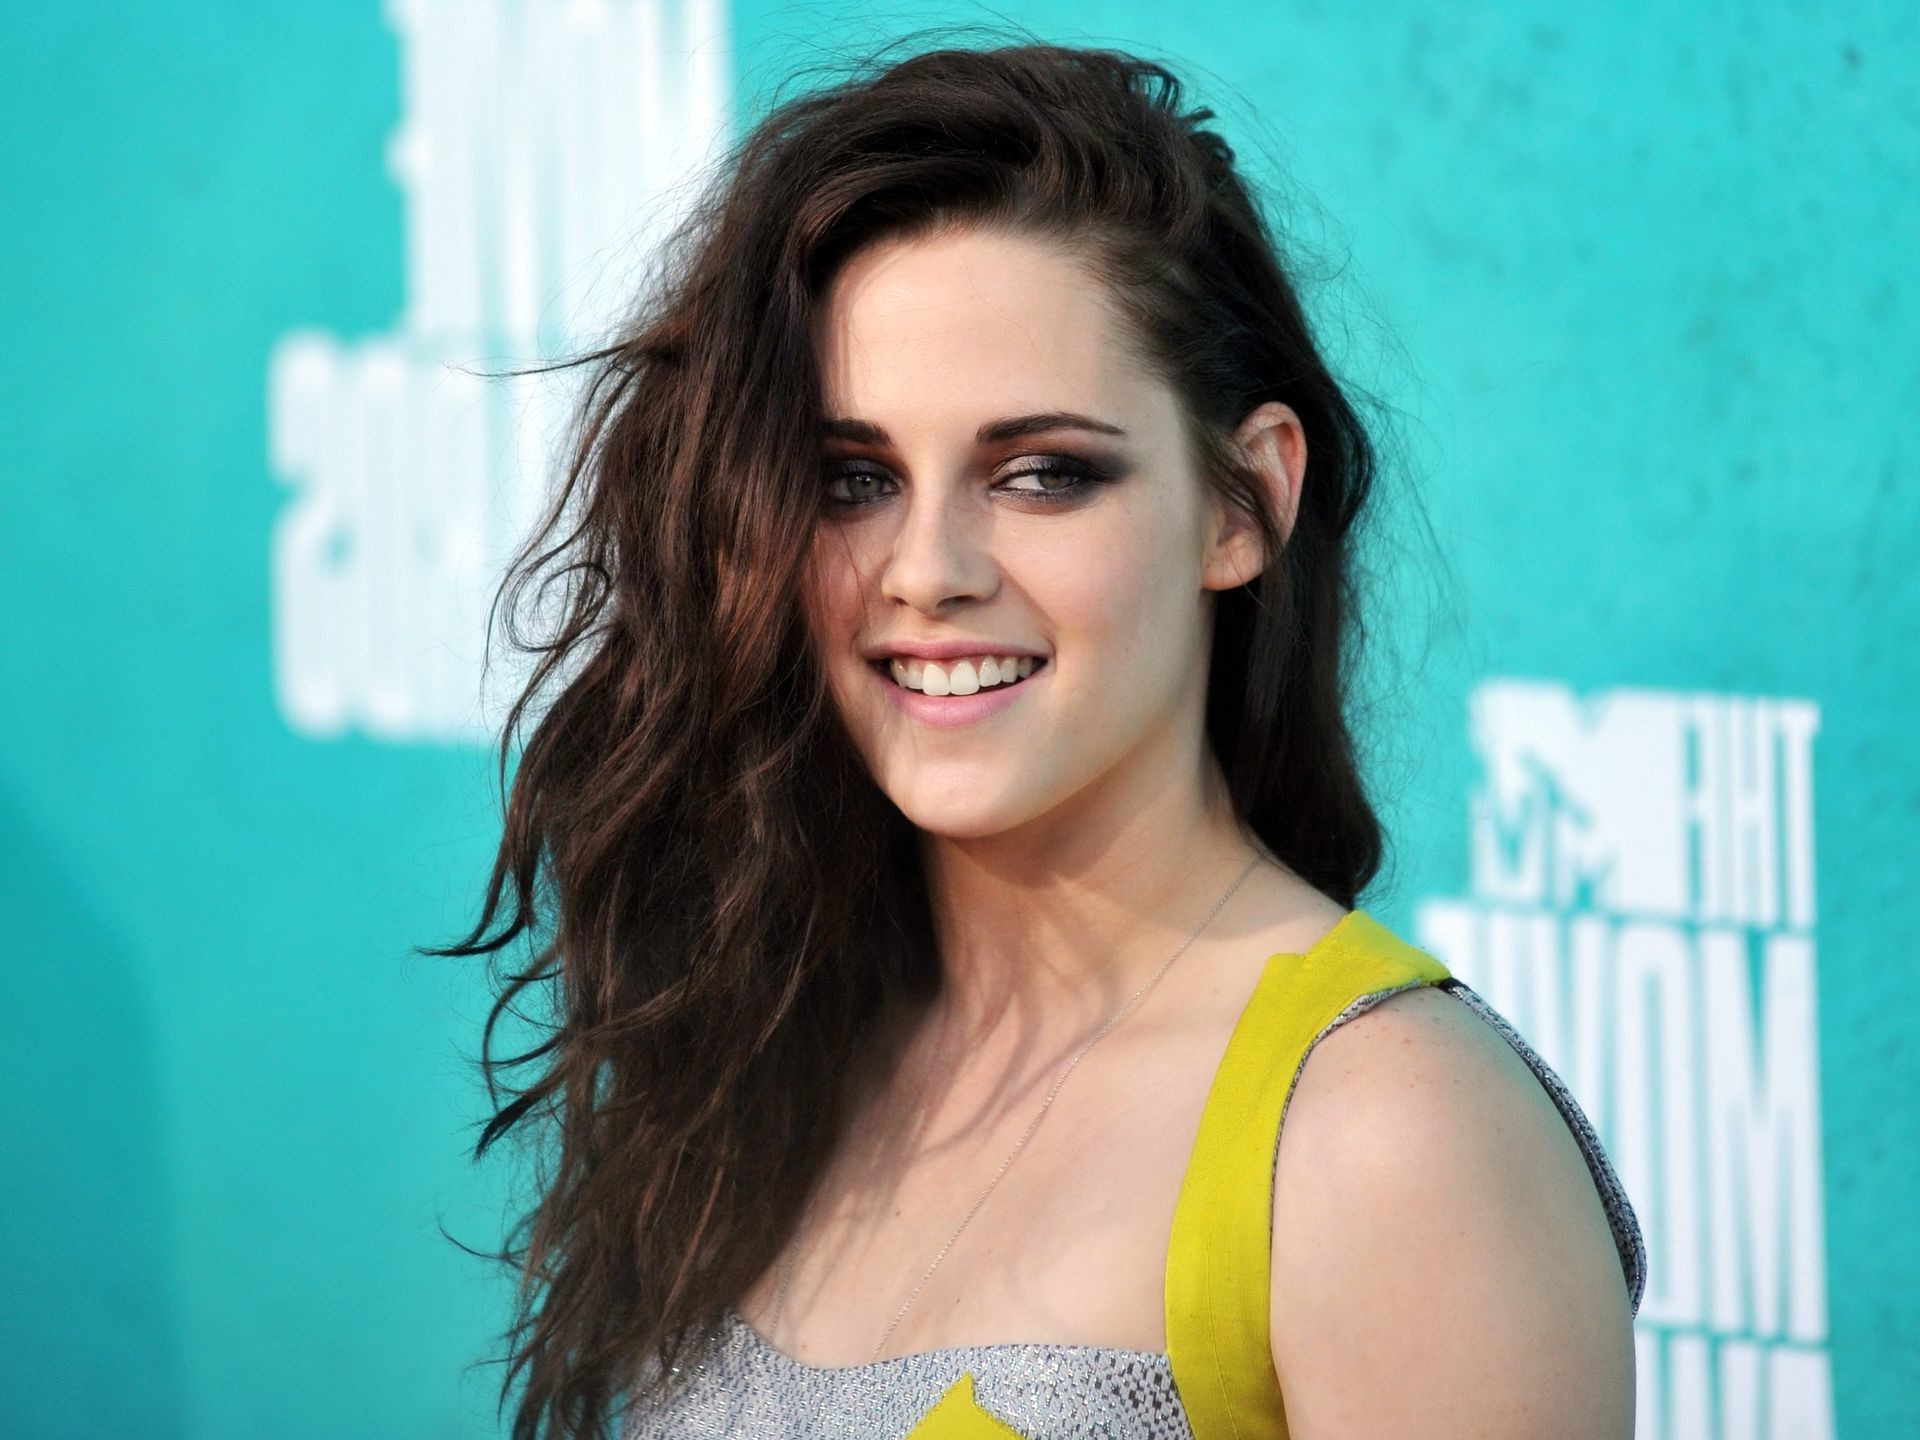 Res: 1920x1440, Kristen Stewart HD Wallpapers New HD Wallpapers Download